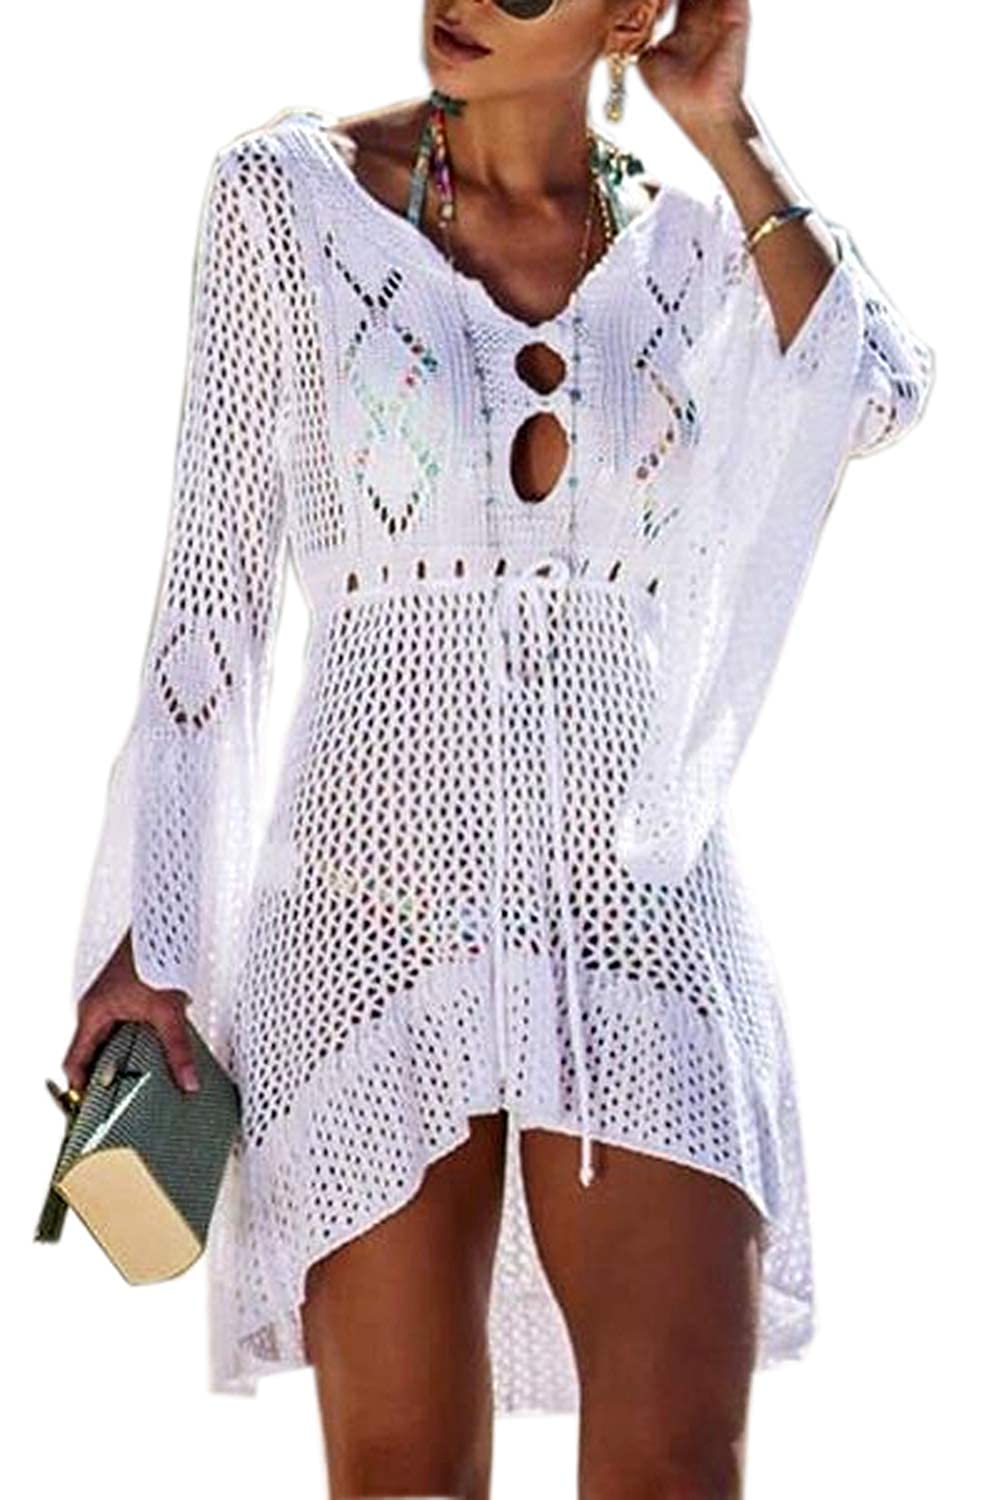 6fd36870d9dad Walant Womens Crochet Sexy Swimsuit Cover Up Bikini Bathing Suit Beach Dress  at Amazon Women's Clothing store: